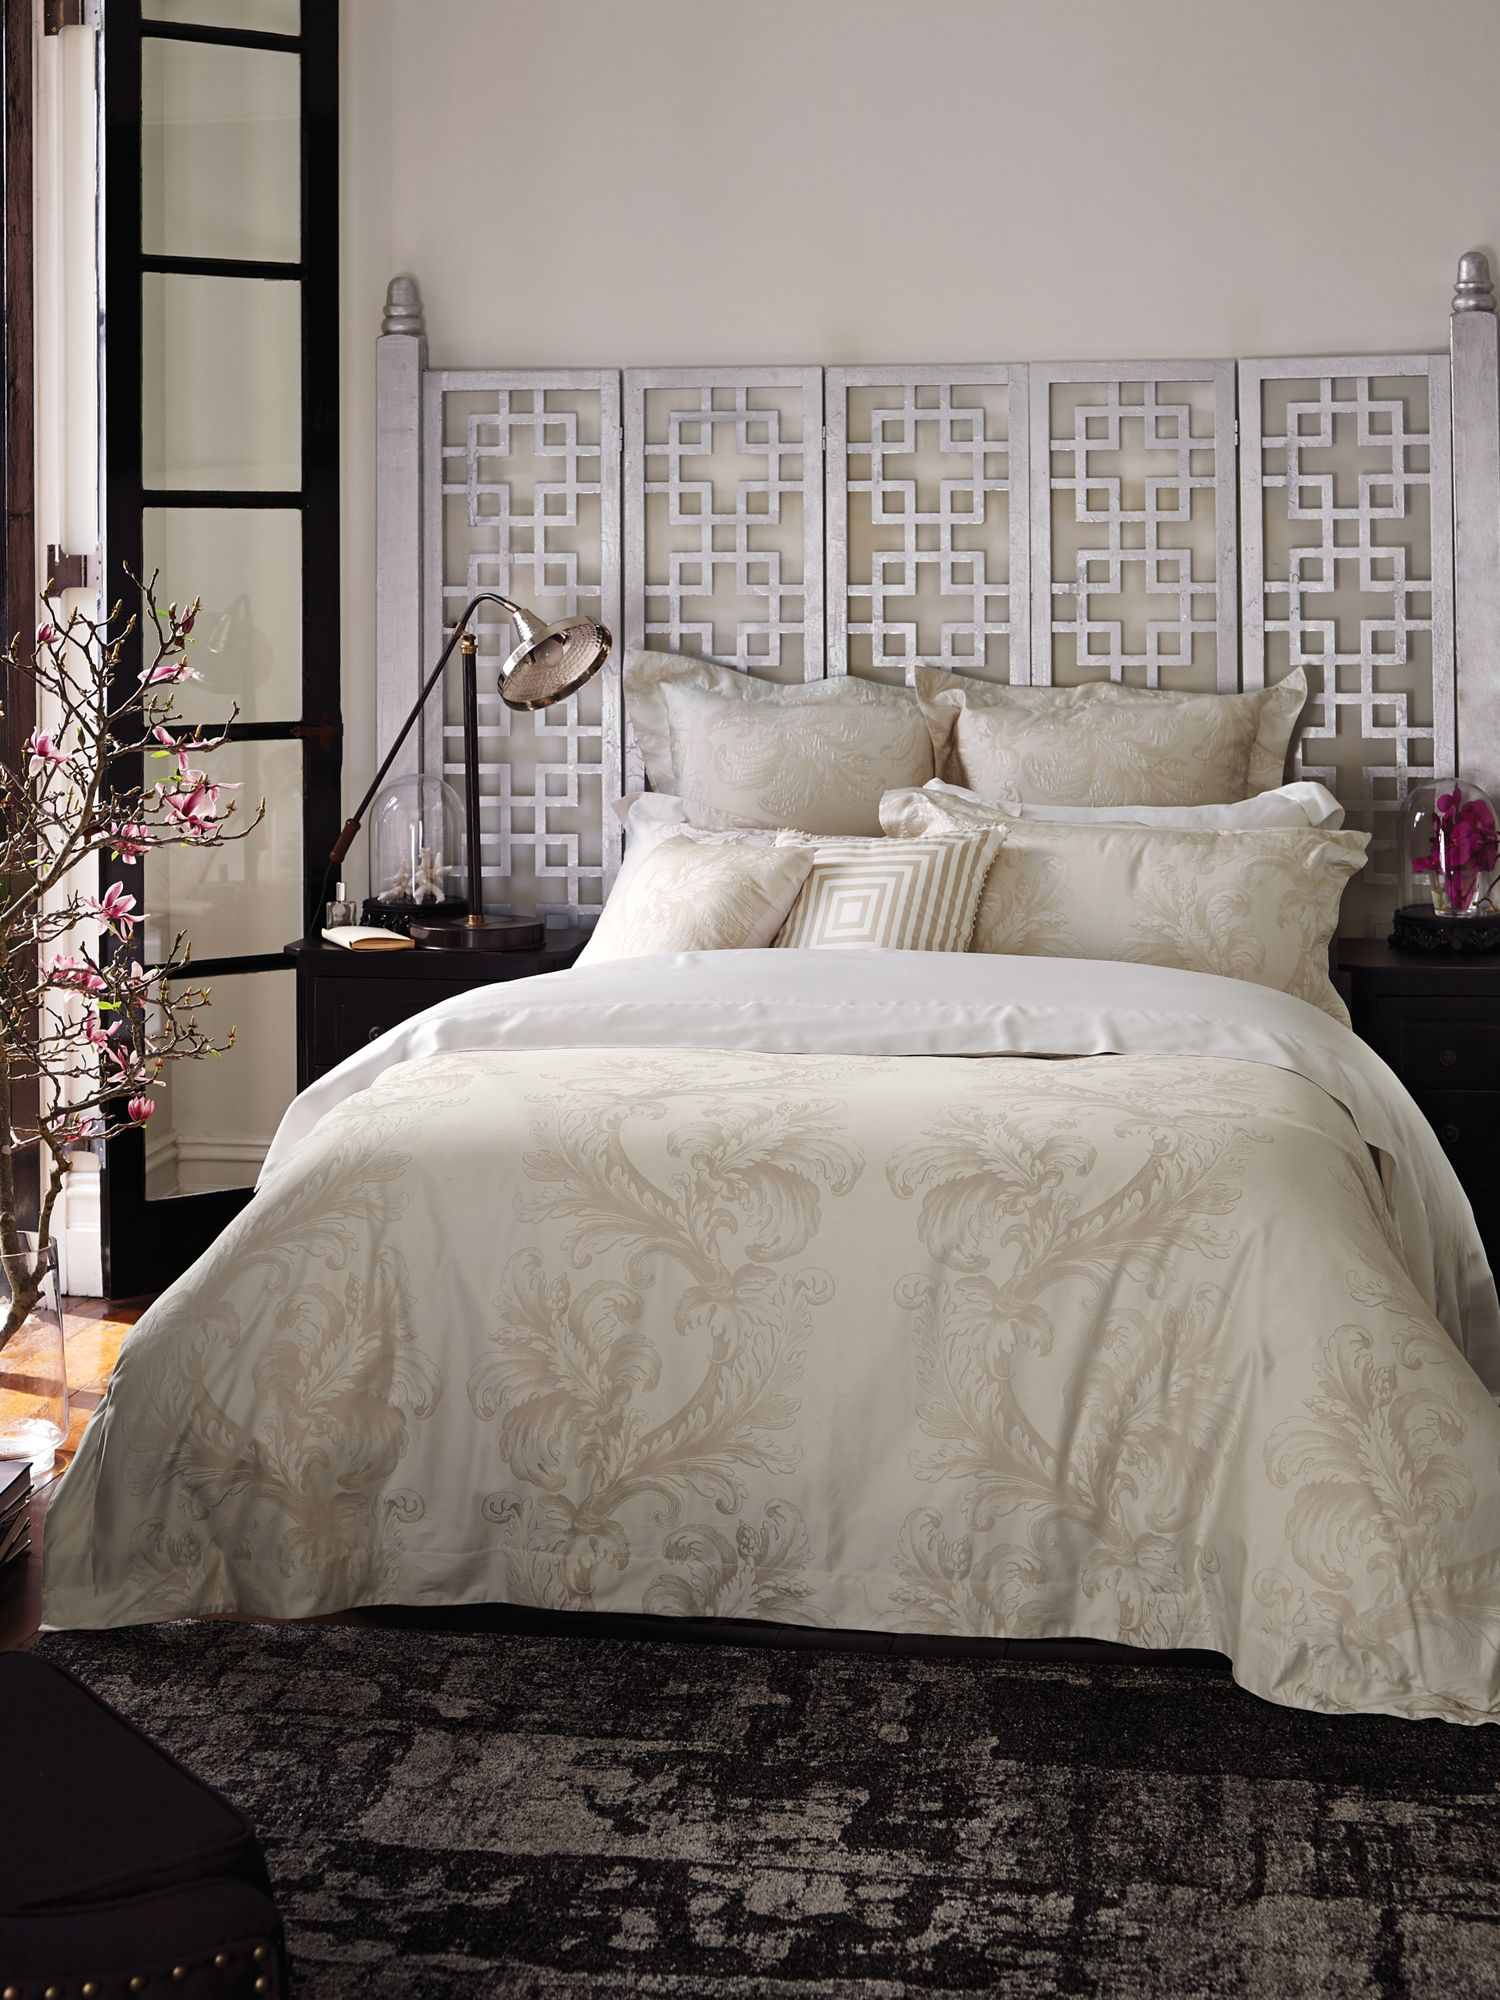 Duvet Covers | Shop Quilt Covers - House of Fraser